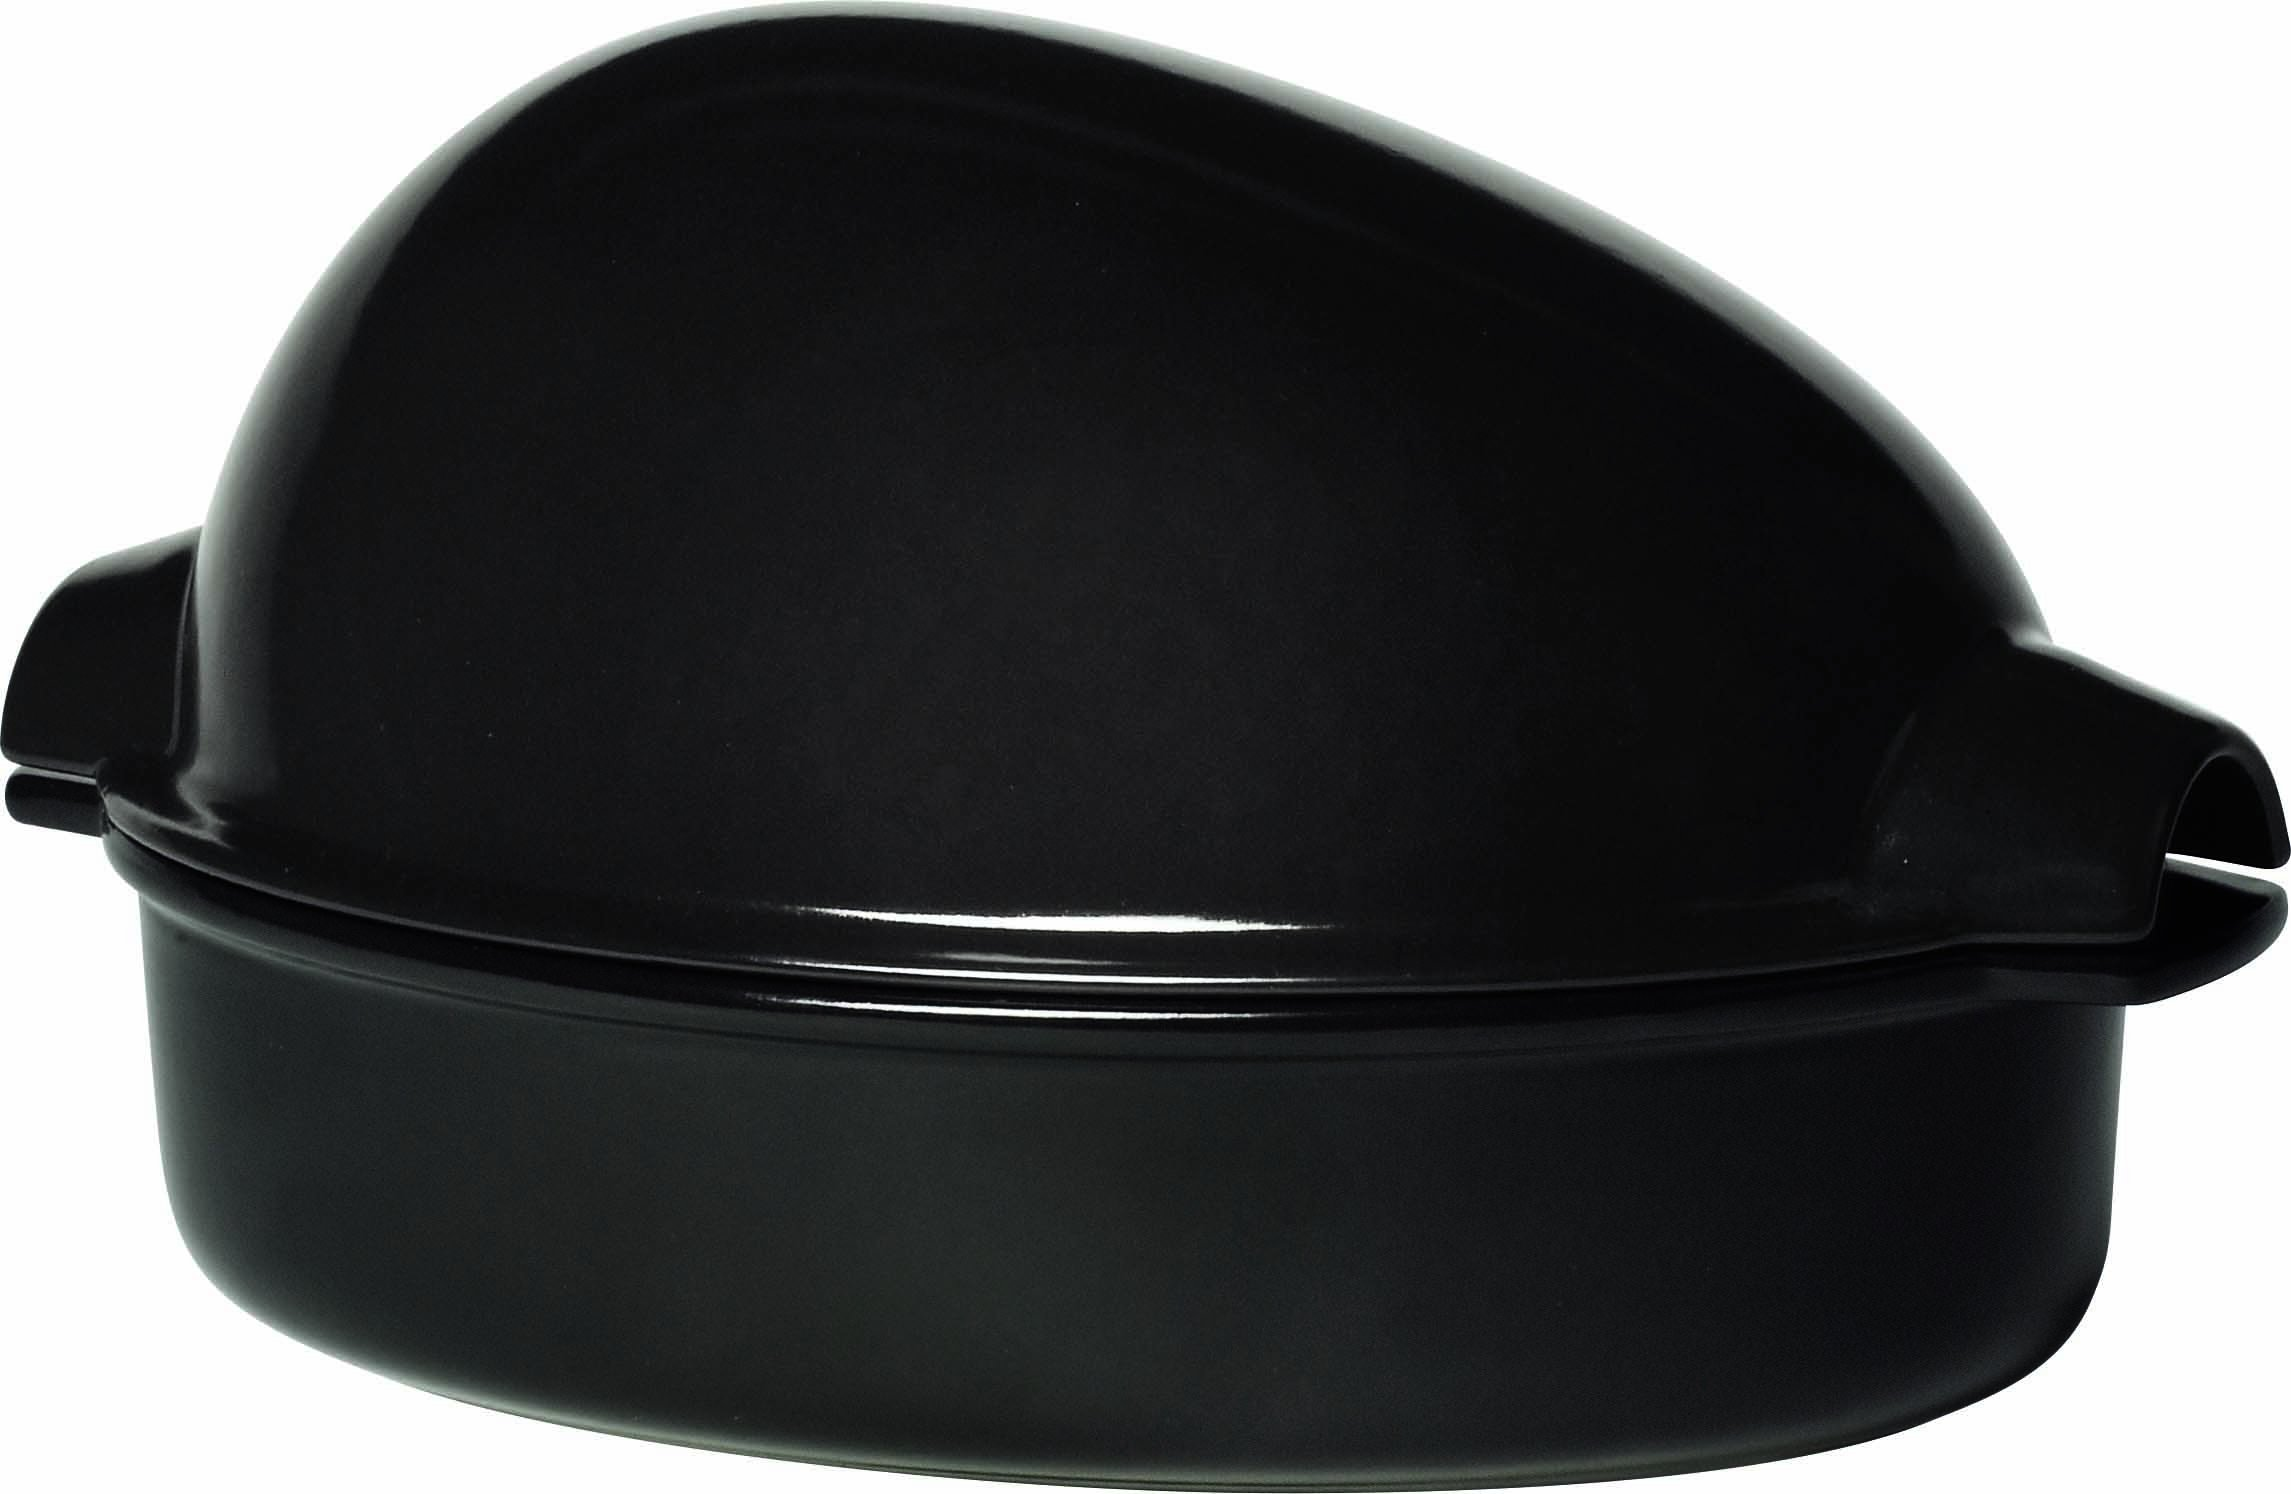 Emile Henry Made In France Chicken Baker, 13.5'' by 9.5'' by 7.5'', Charcoal